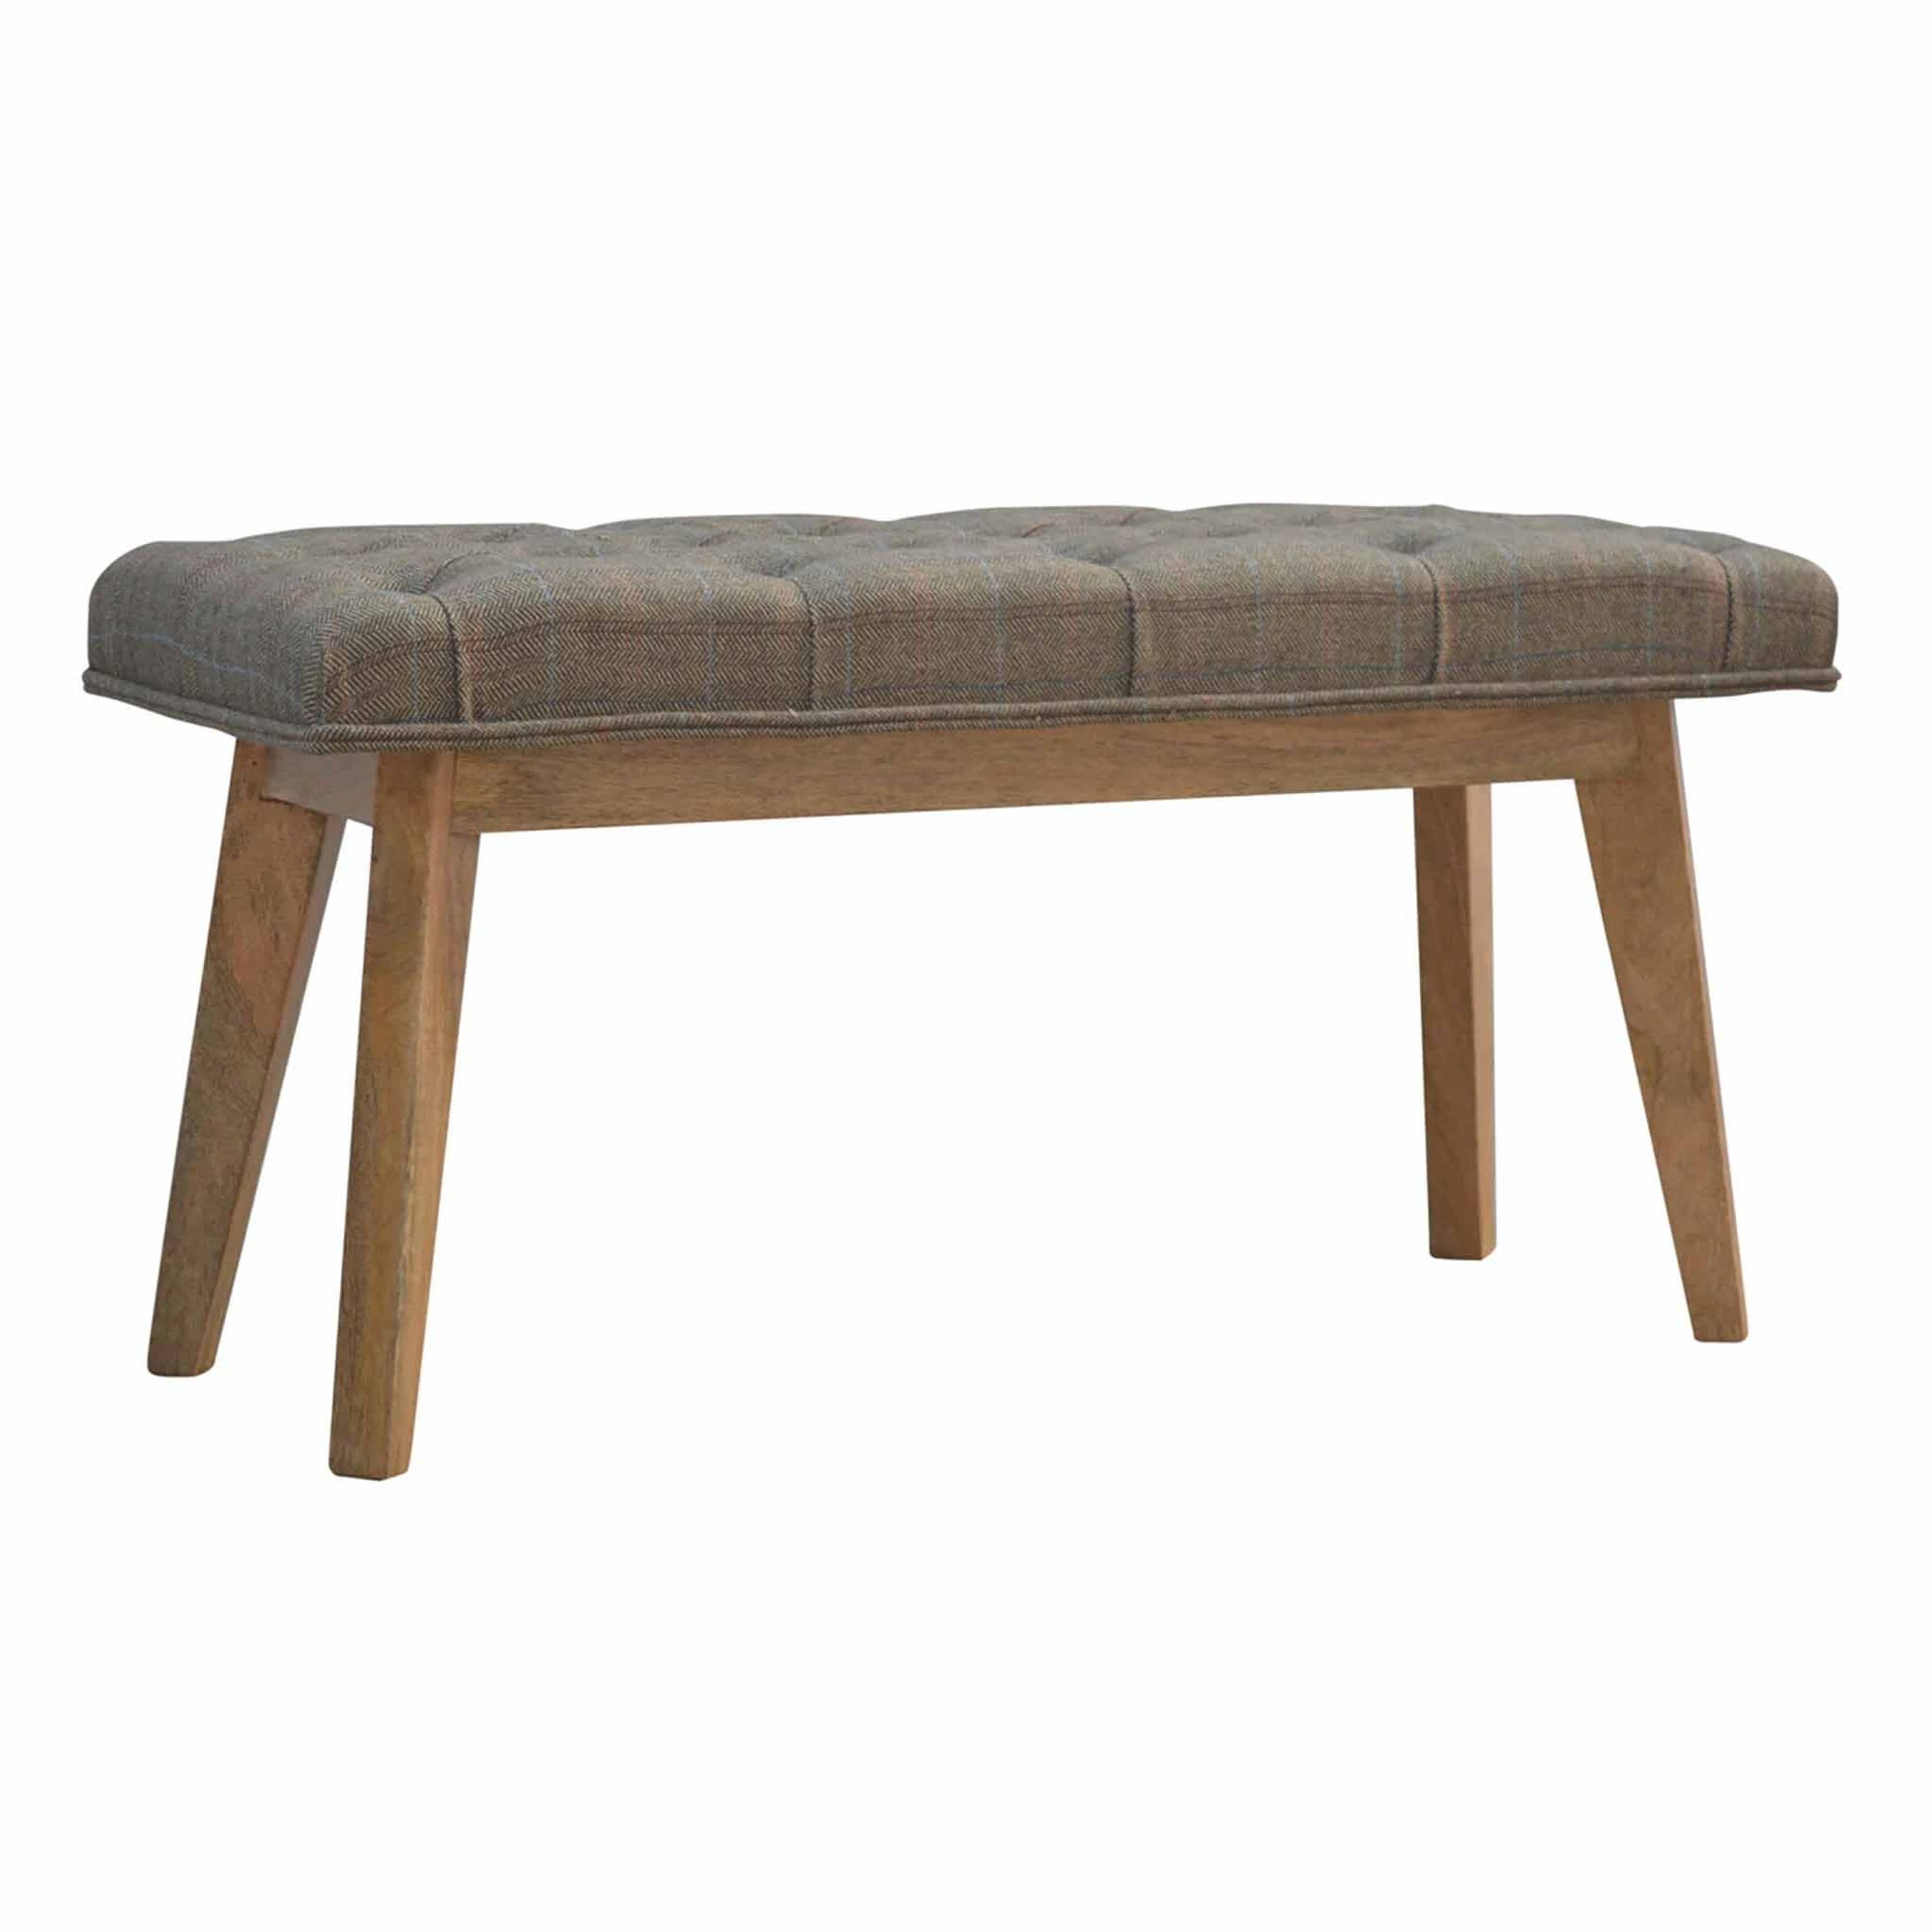 The Artisan Wooden Bench Upholstered in Tweed from Roseland Furniture